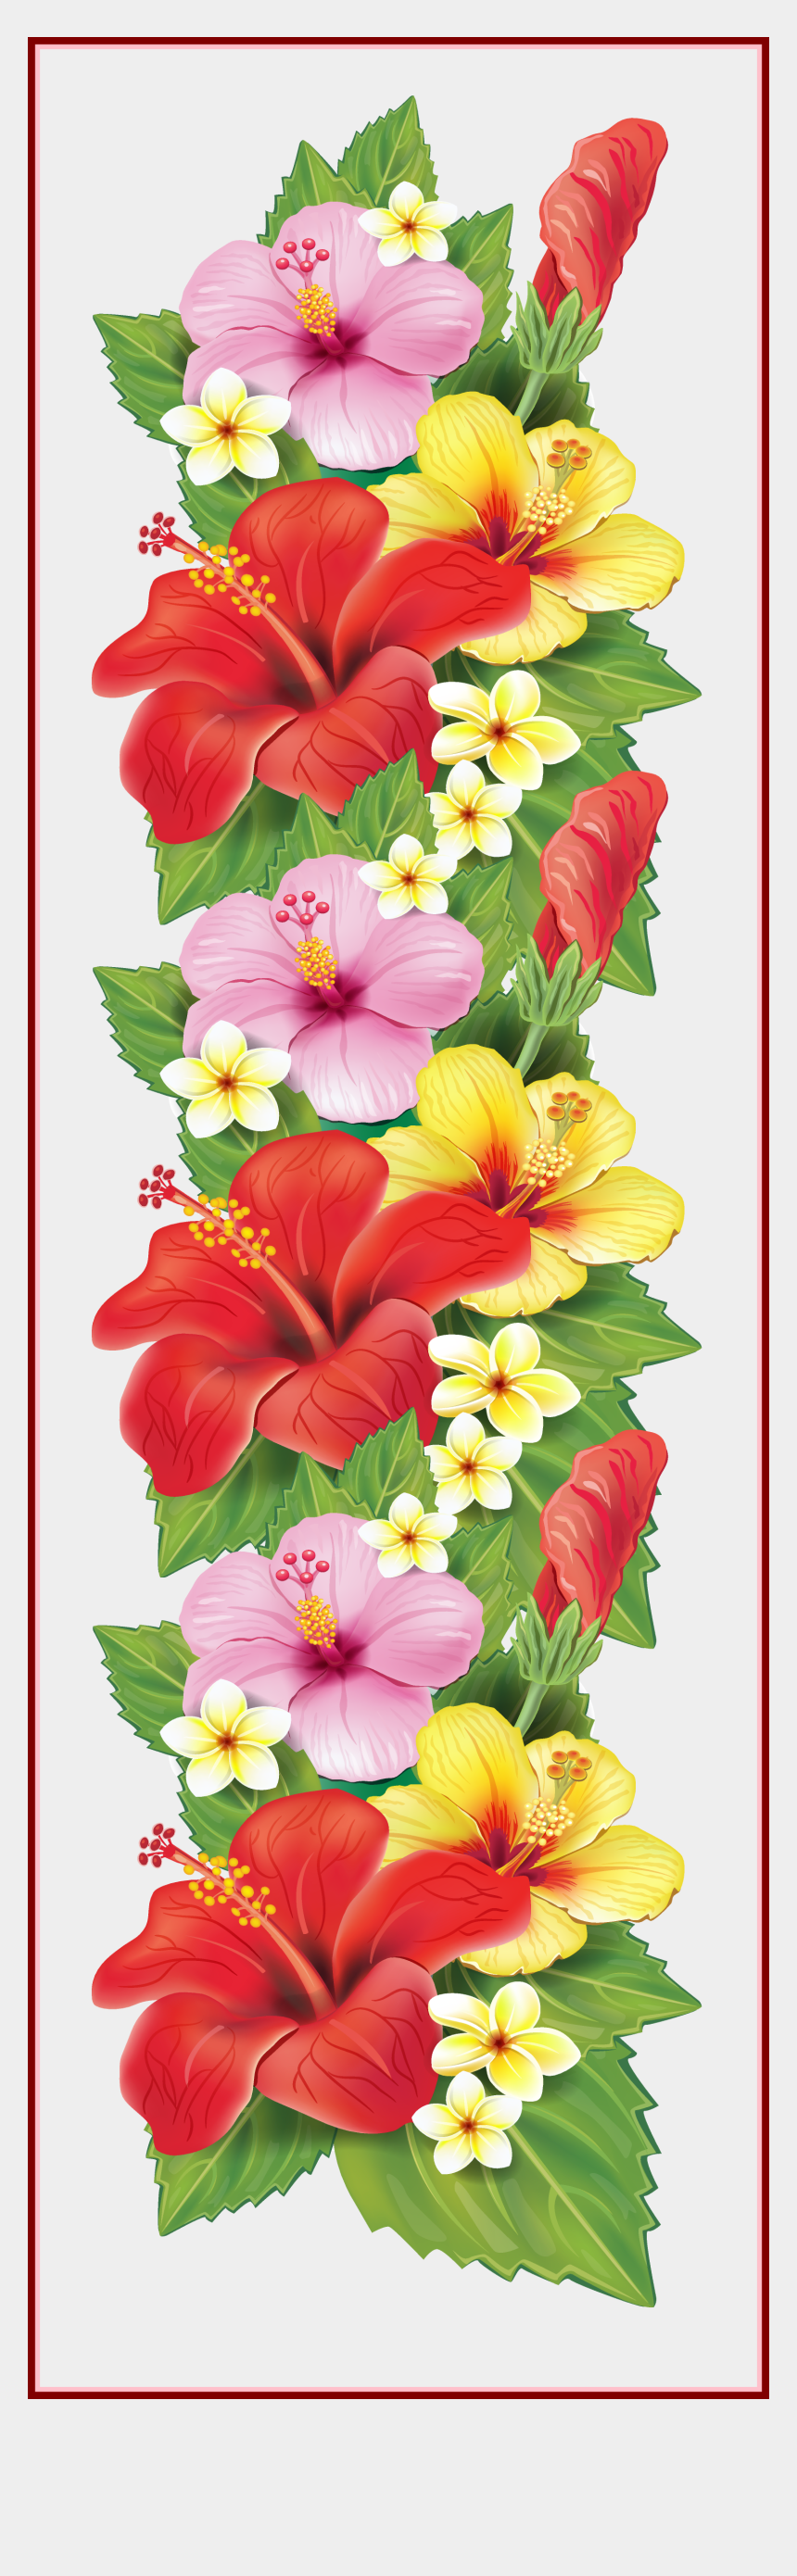 tropical flower clipart, Cartoons - Fascinating Watercolor Floral Png Wedding Bouquet Stunning